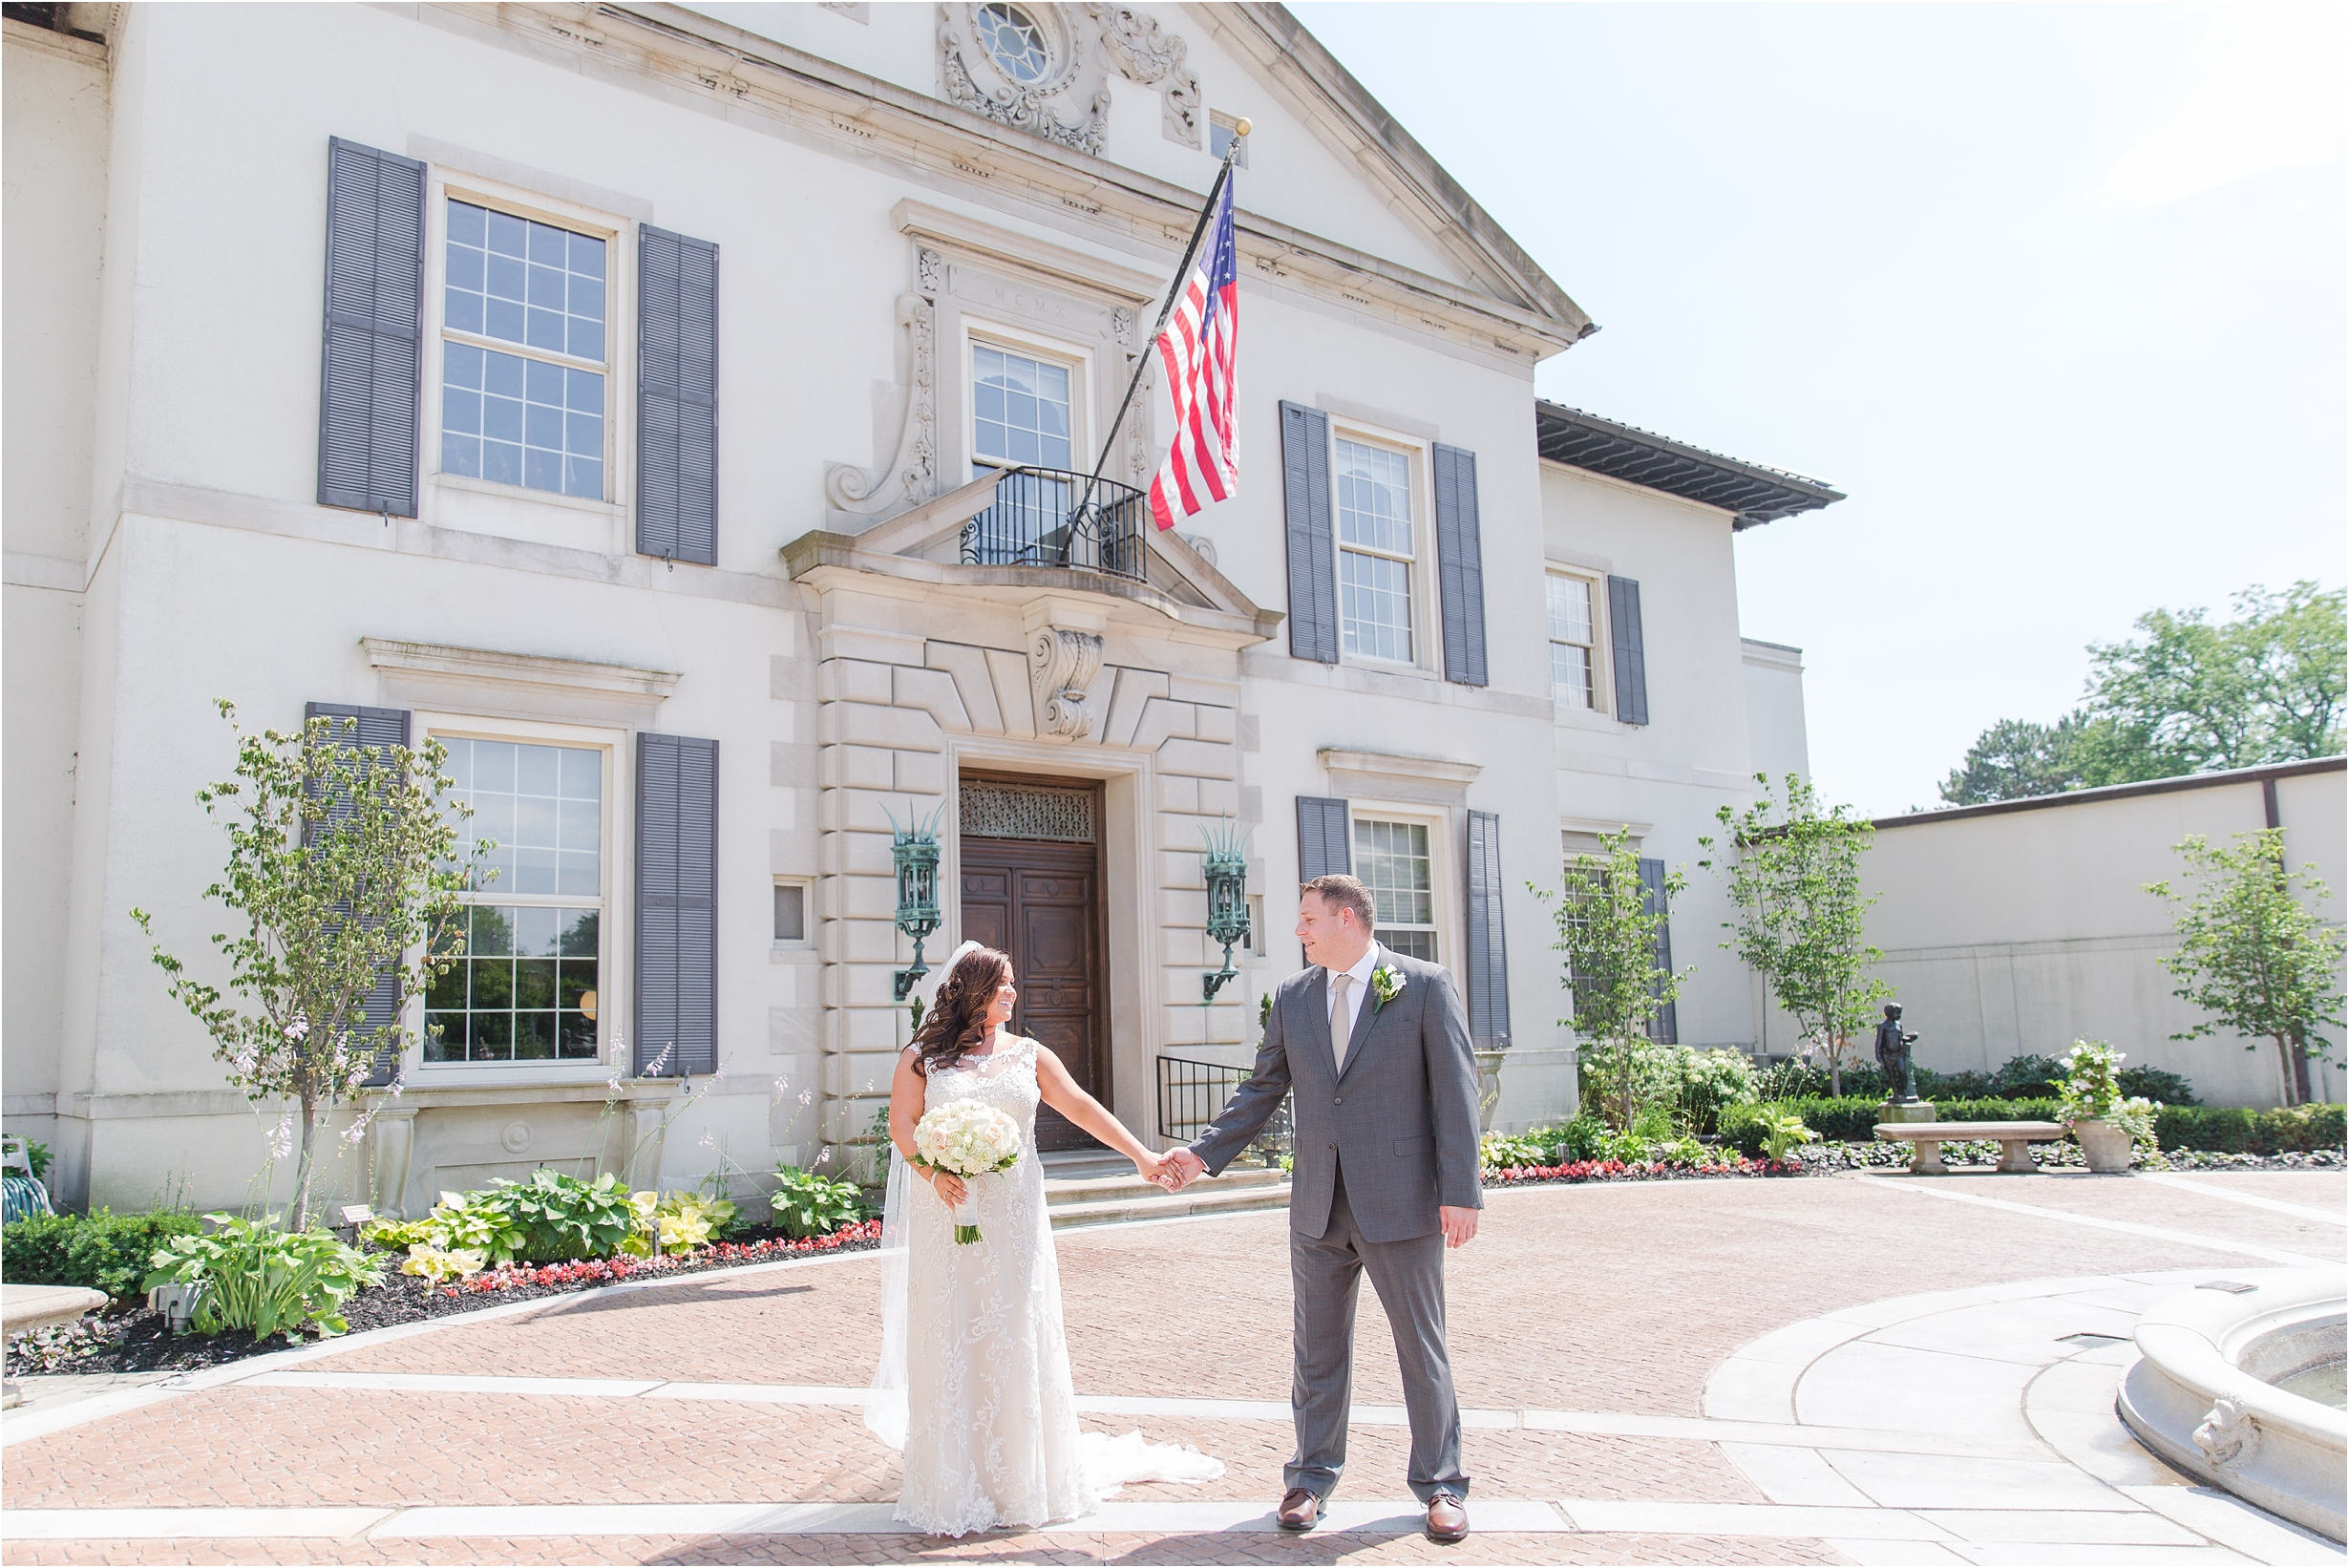 romantic-timeless-candid-wedding-photos-at-the-war-memorial-in-grosse-pointe-mi-by-courtney-carolyn-photography_0005.jpg